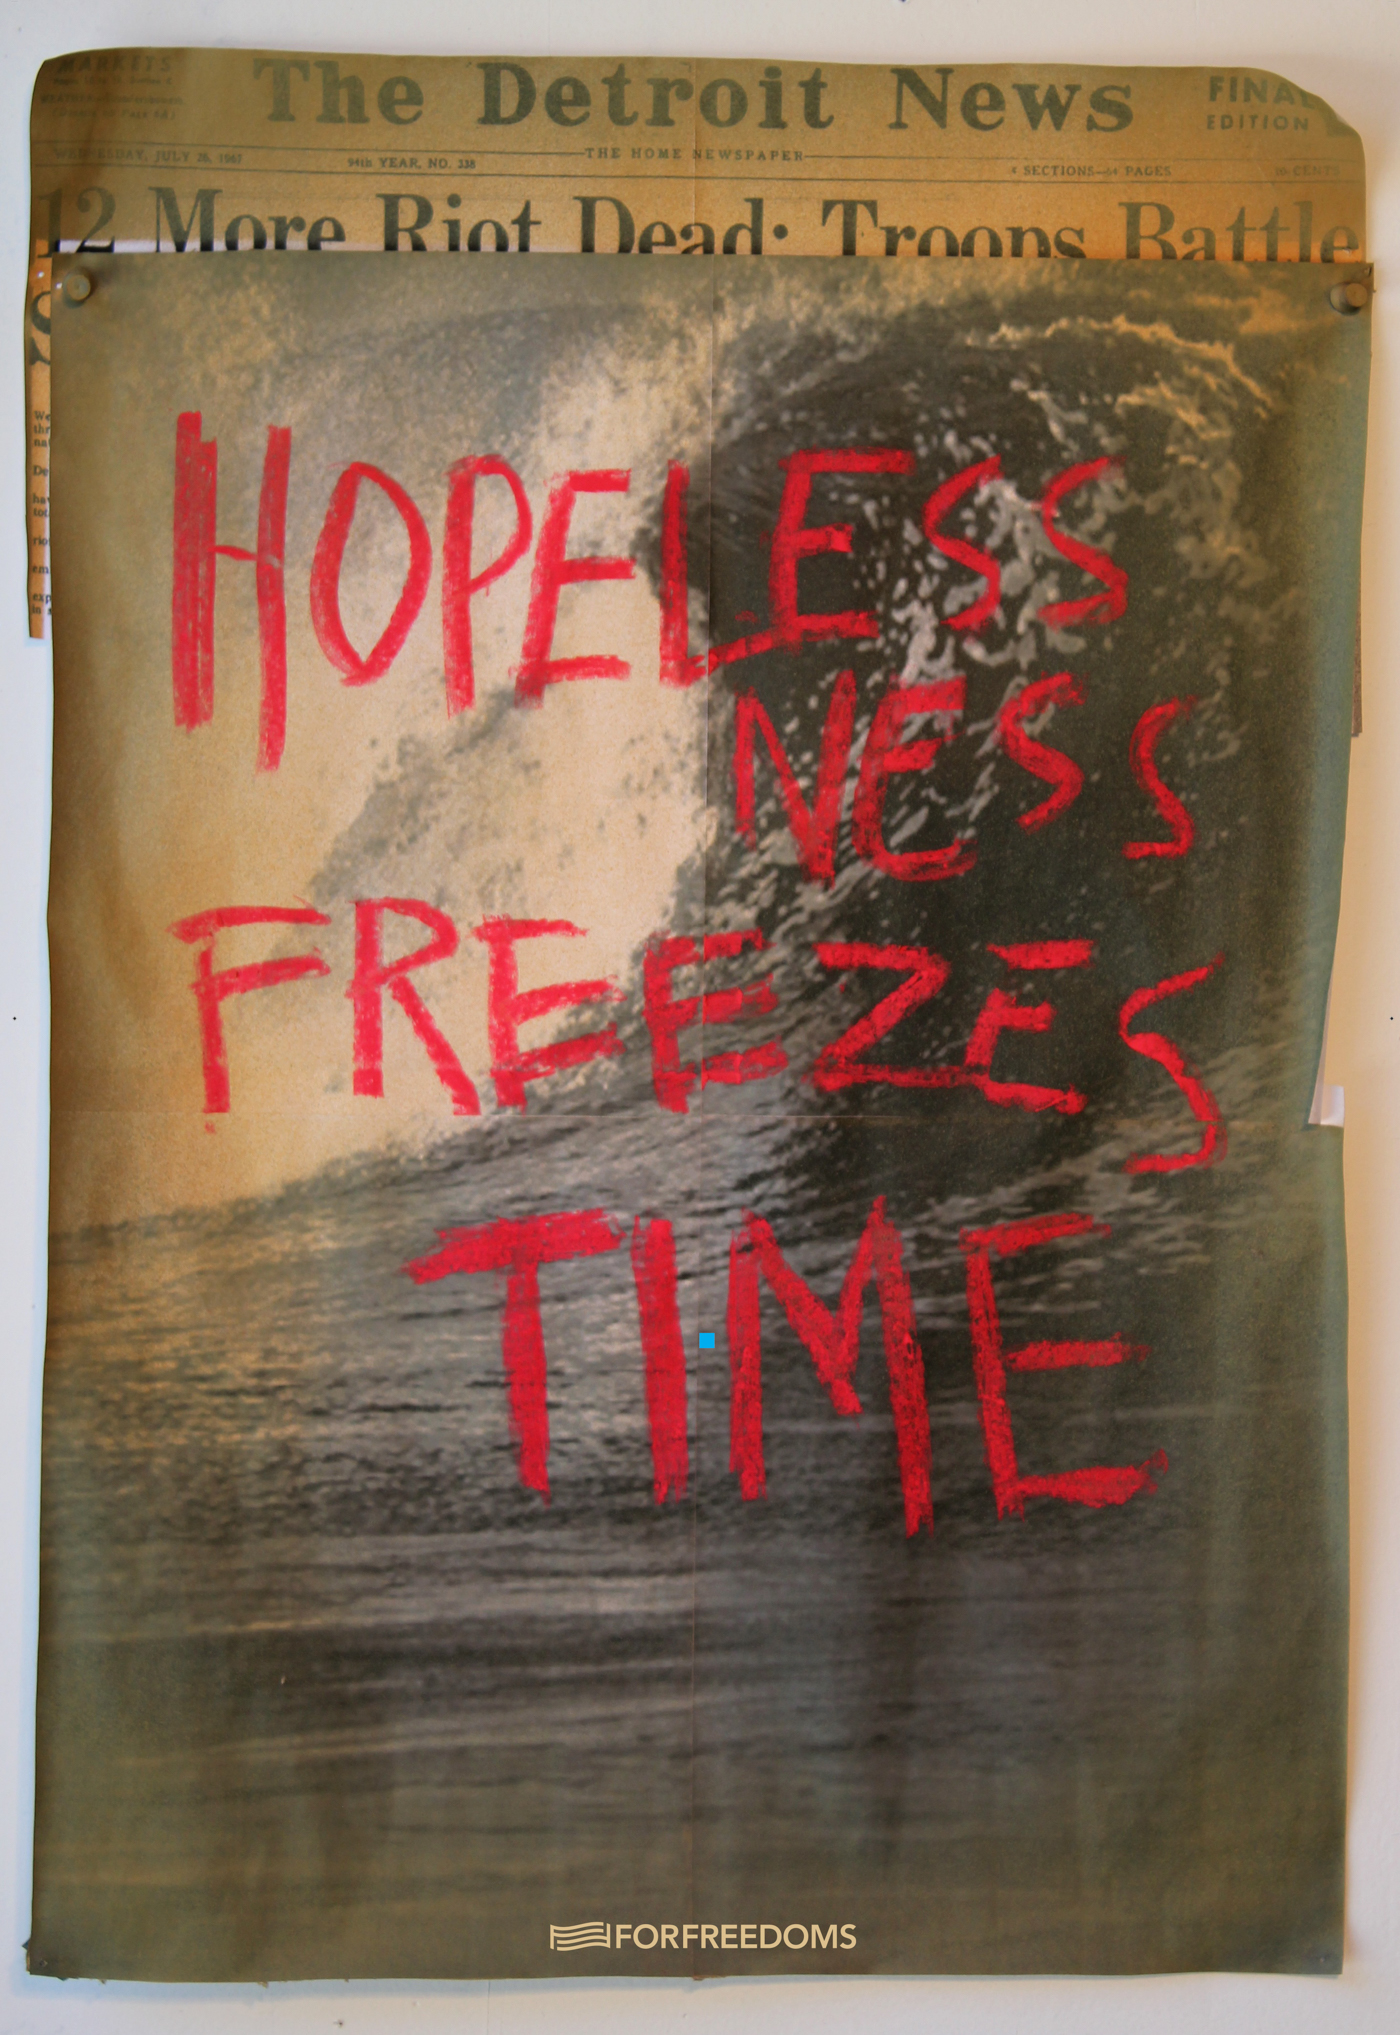 Edgar Arcenaux, Hopelessness Freezes Time